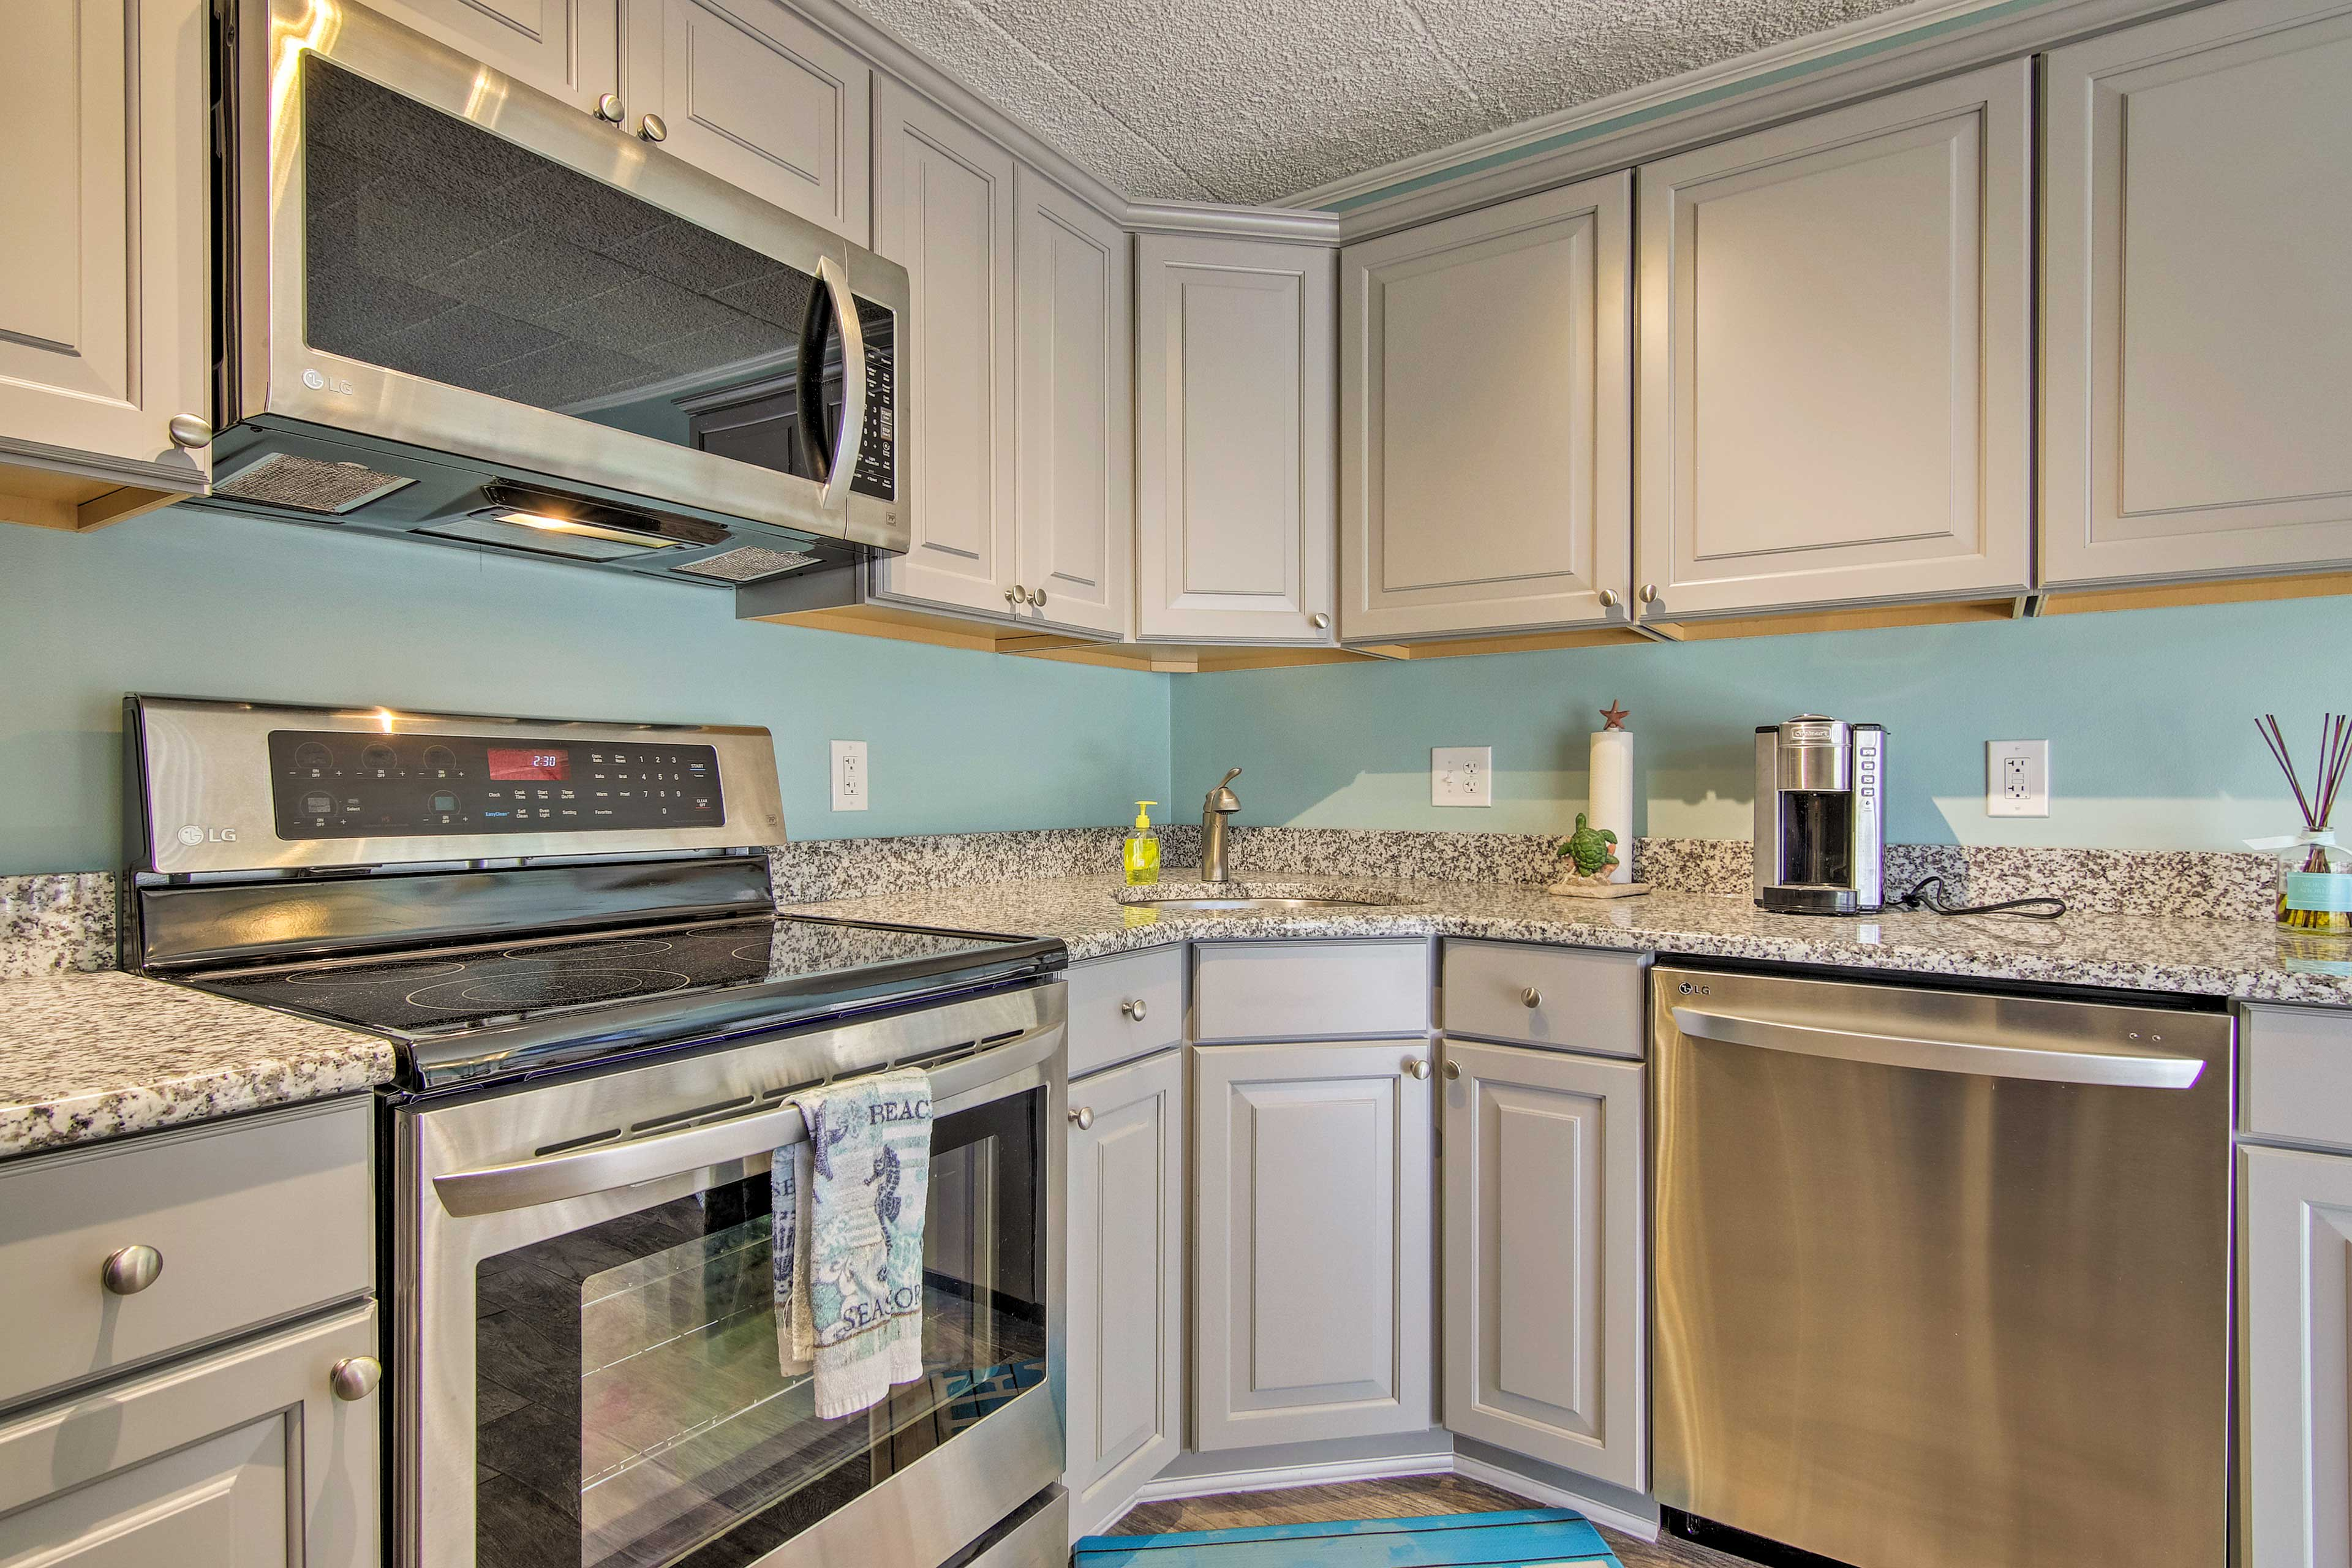 Stainless steel appliances & granite counters create an elegant cooking space.